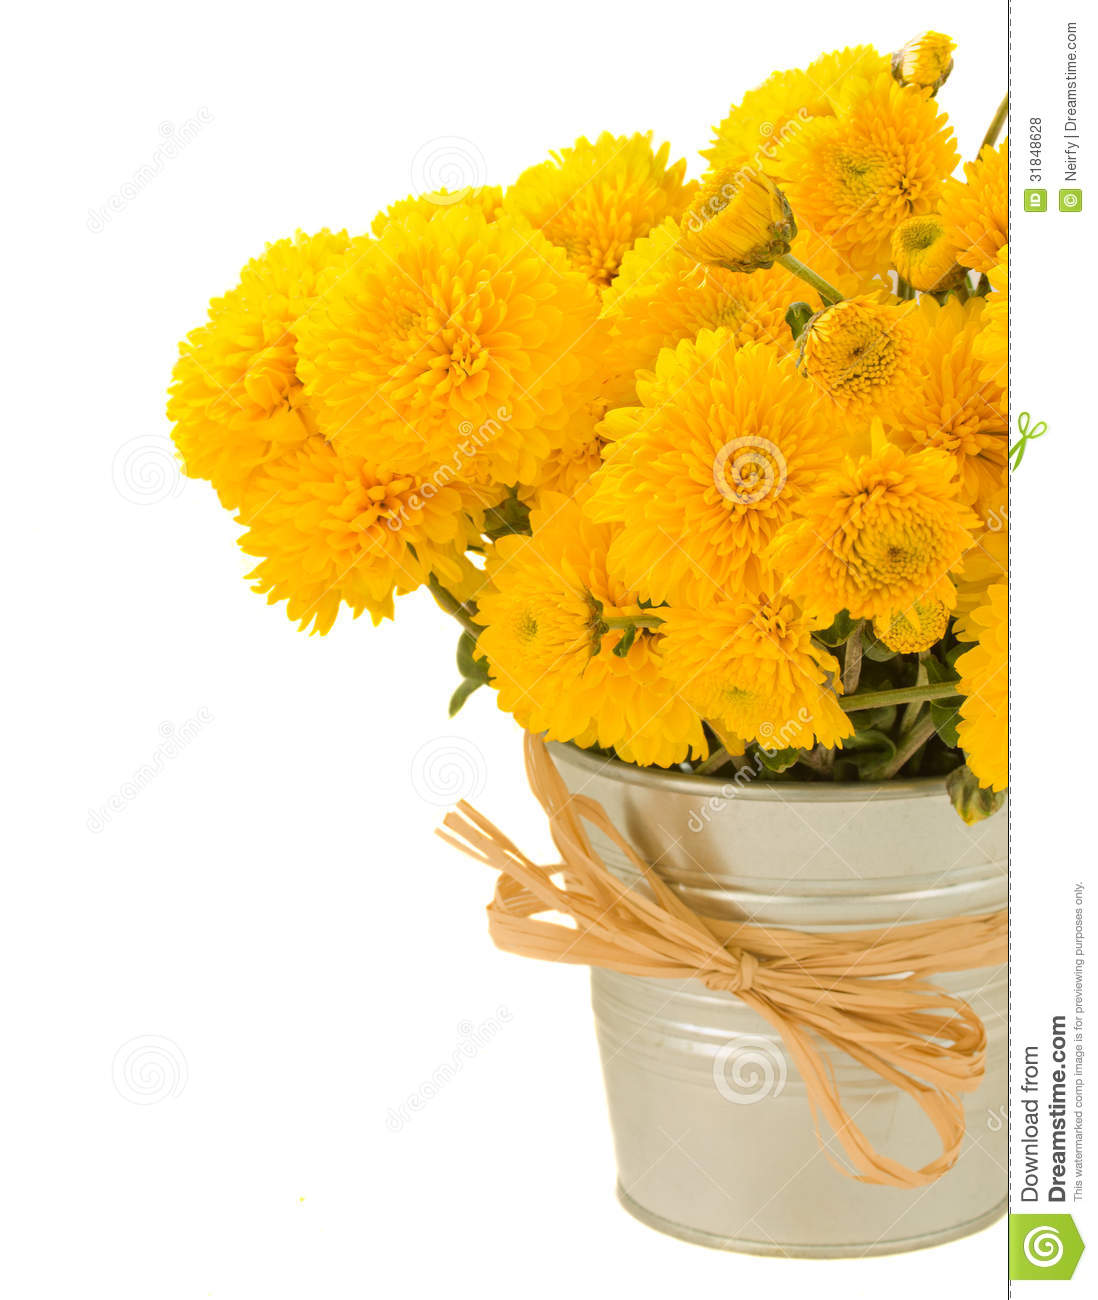 Fall Flower Mums: Bouquet Of Yellow Mums In Pot Royalty Free Stock Photos